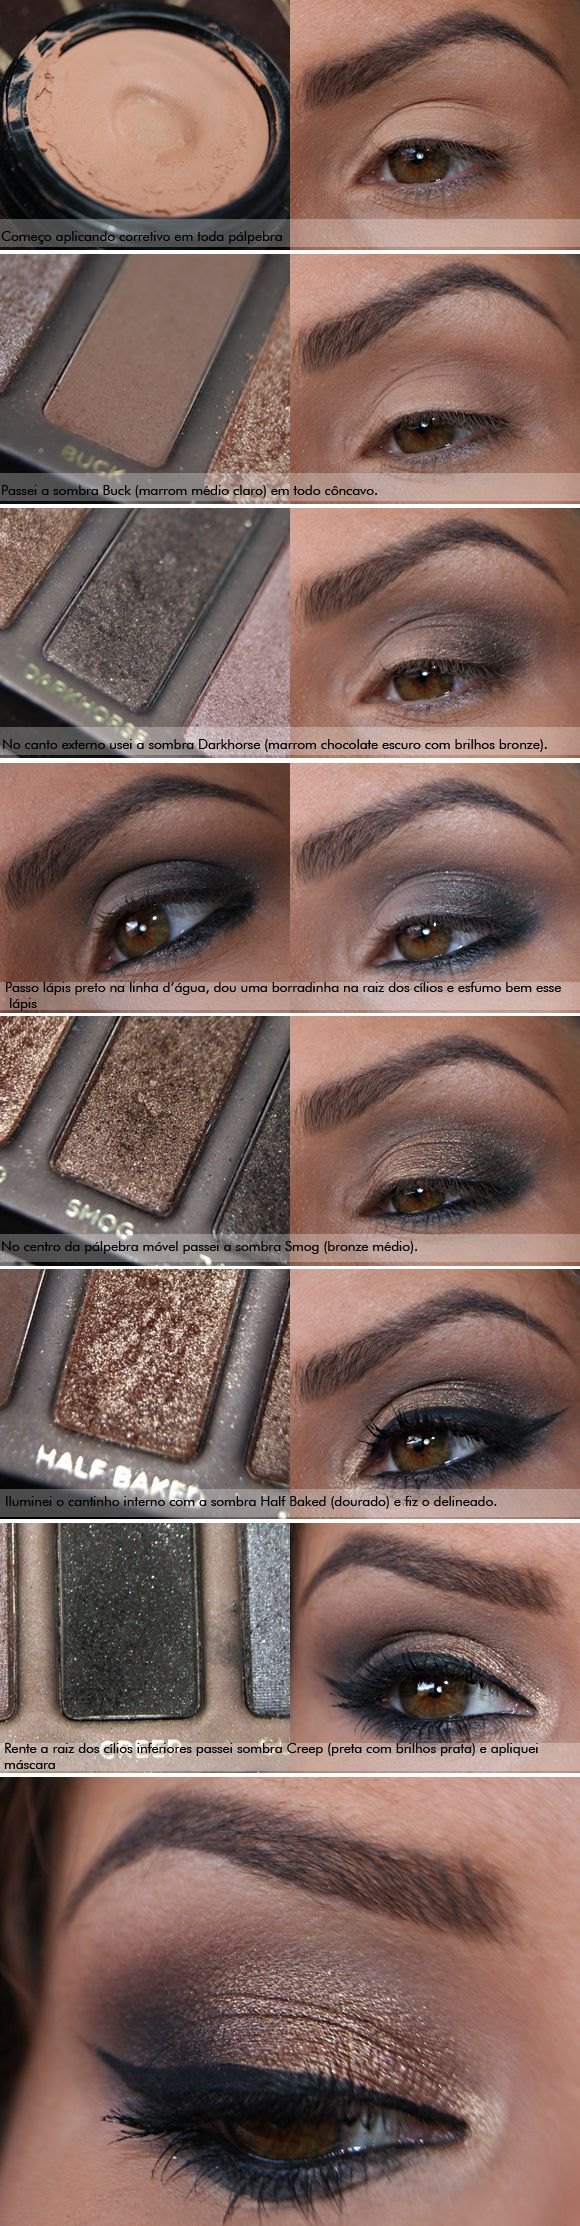 urban decay tutorial for beginners